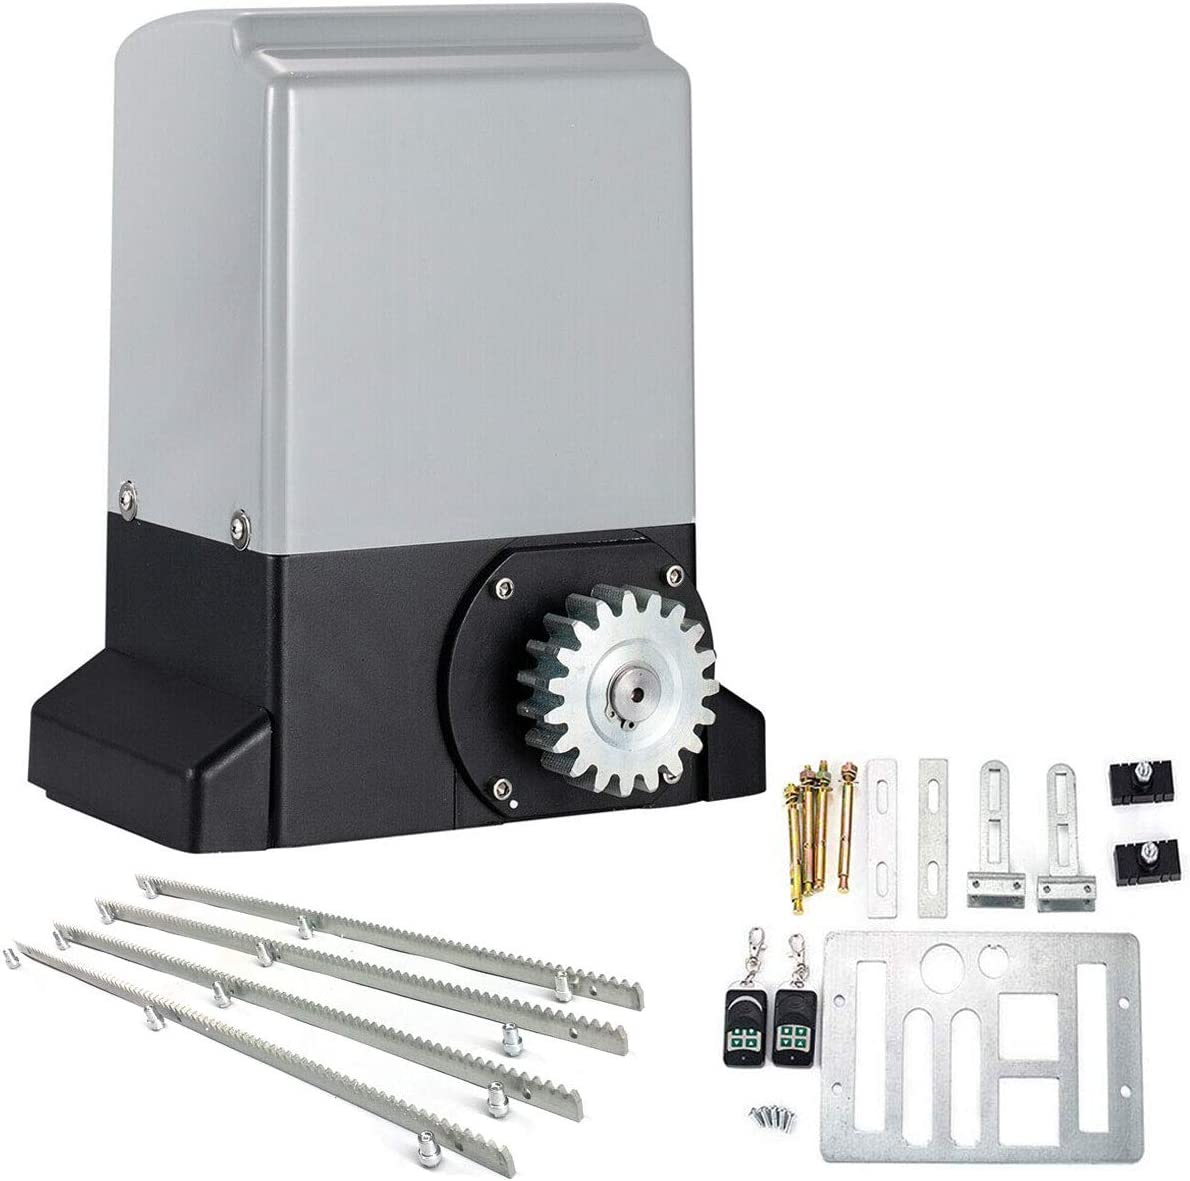 Outstanding Cozyel Same day shipping Automatic Sliding Gate S Opener Driveway Hardware